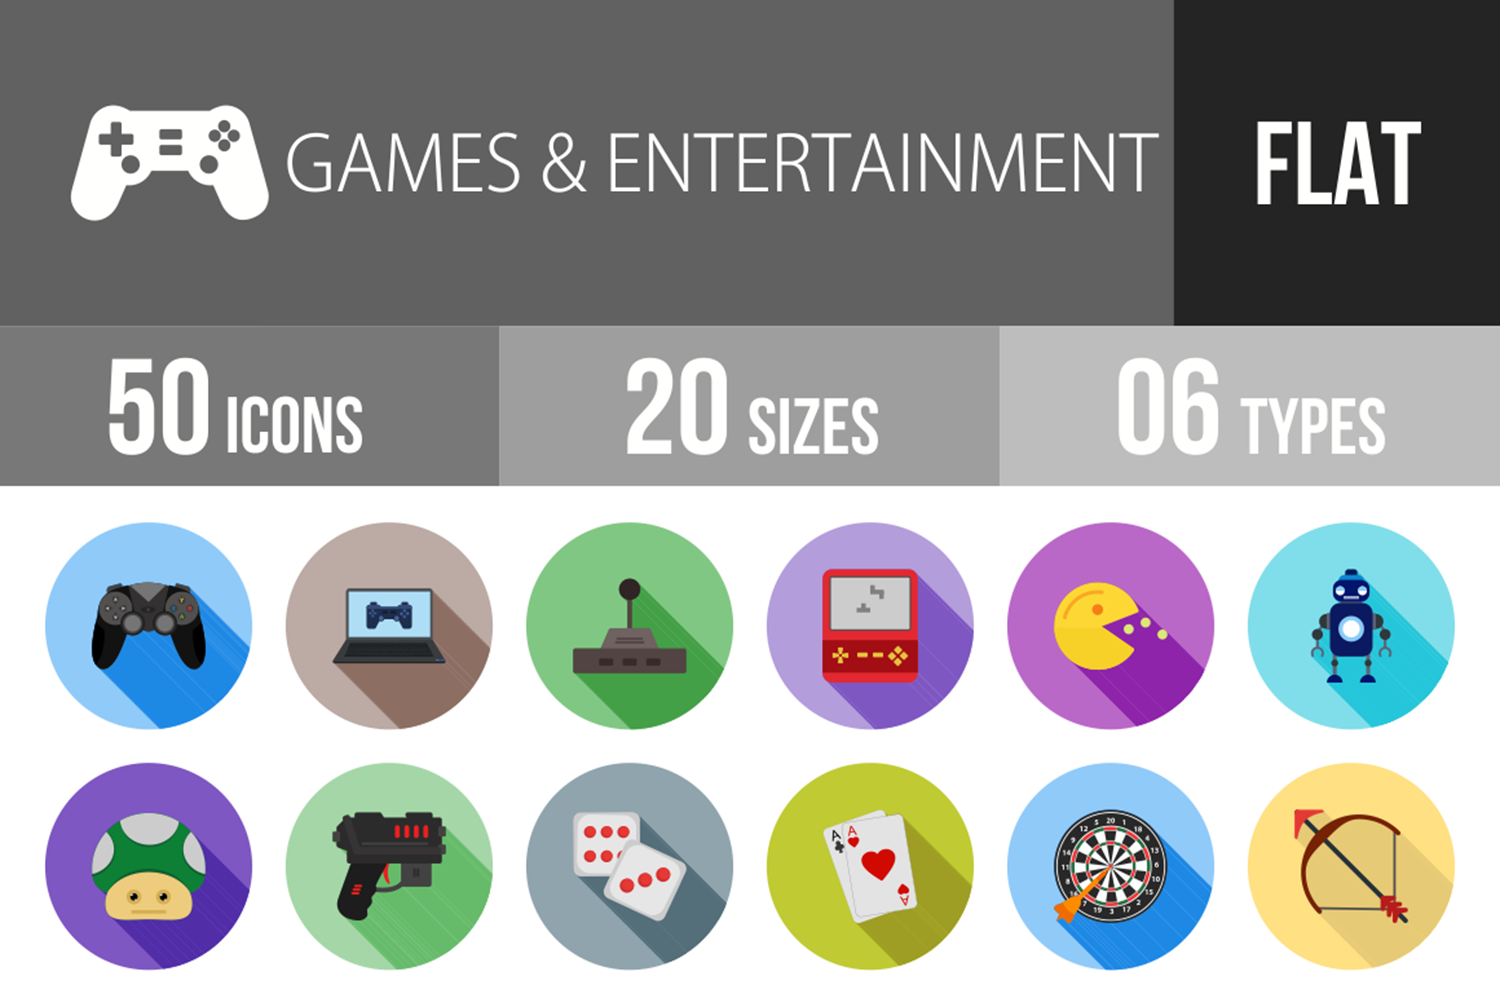 50 Games & Entertainment Flat Long Shadow Icons example image 1